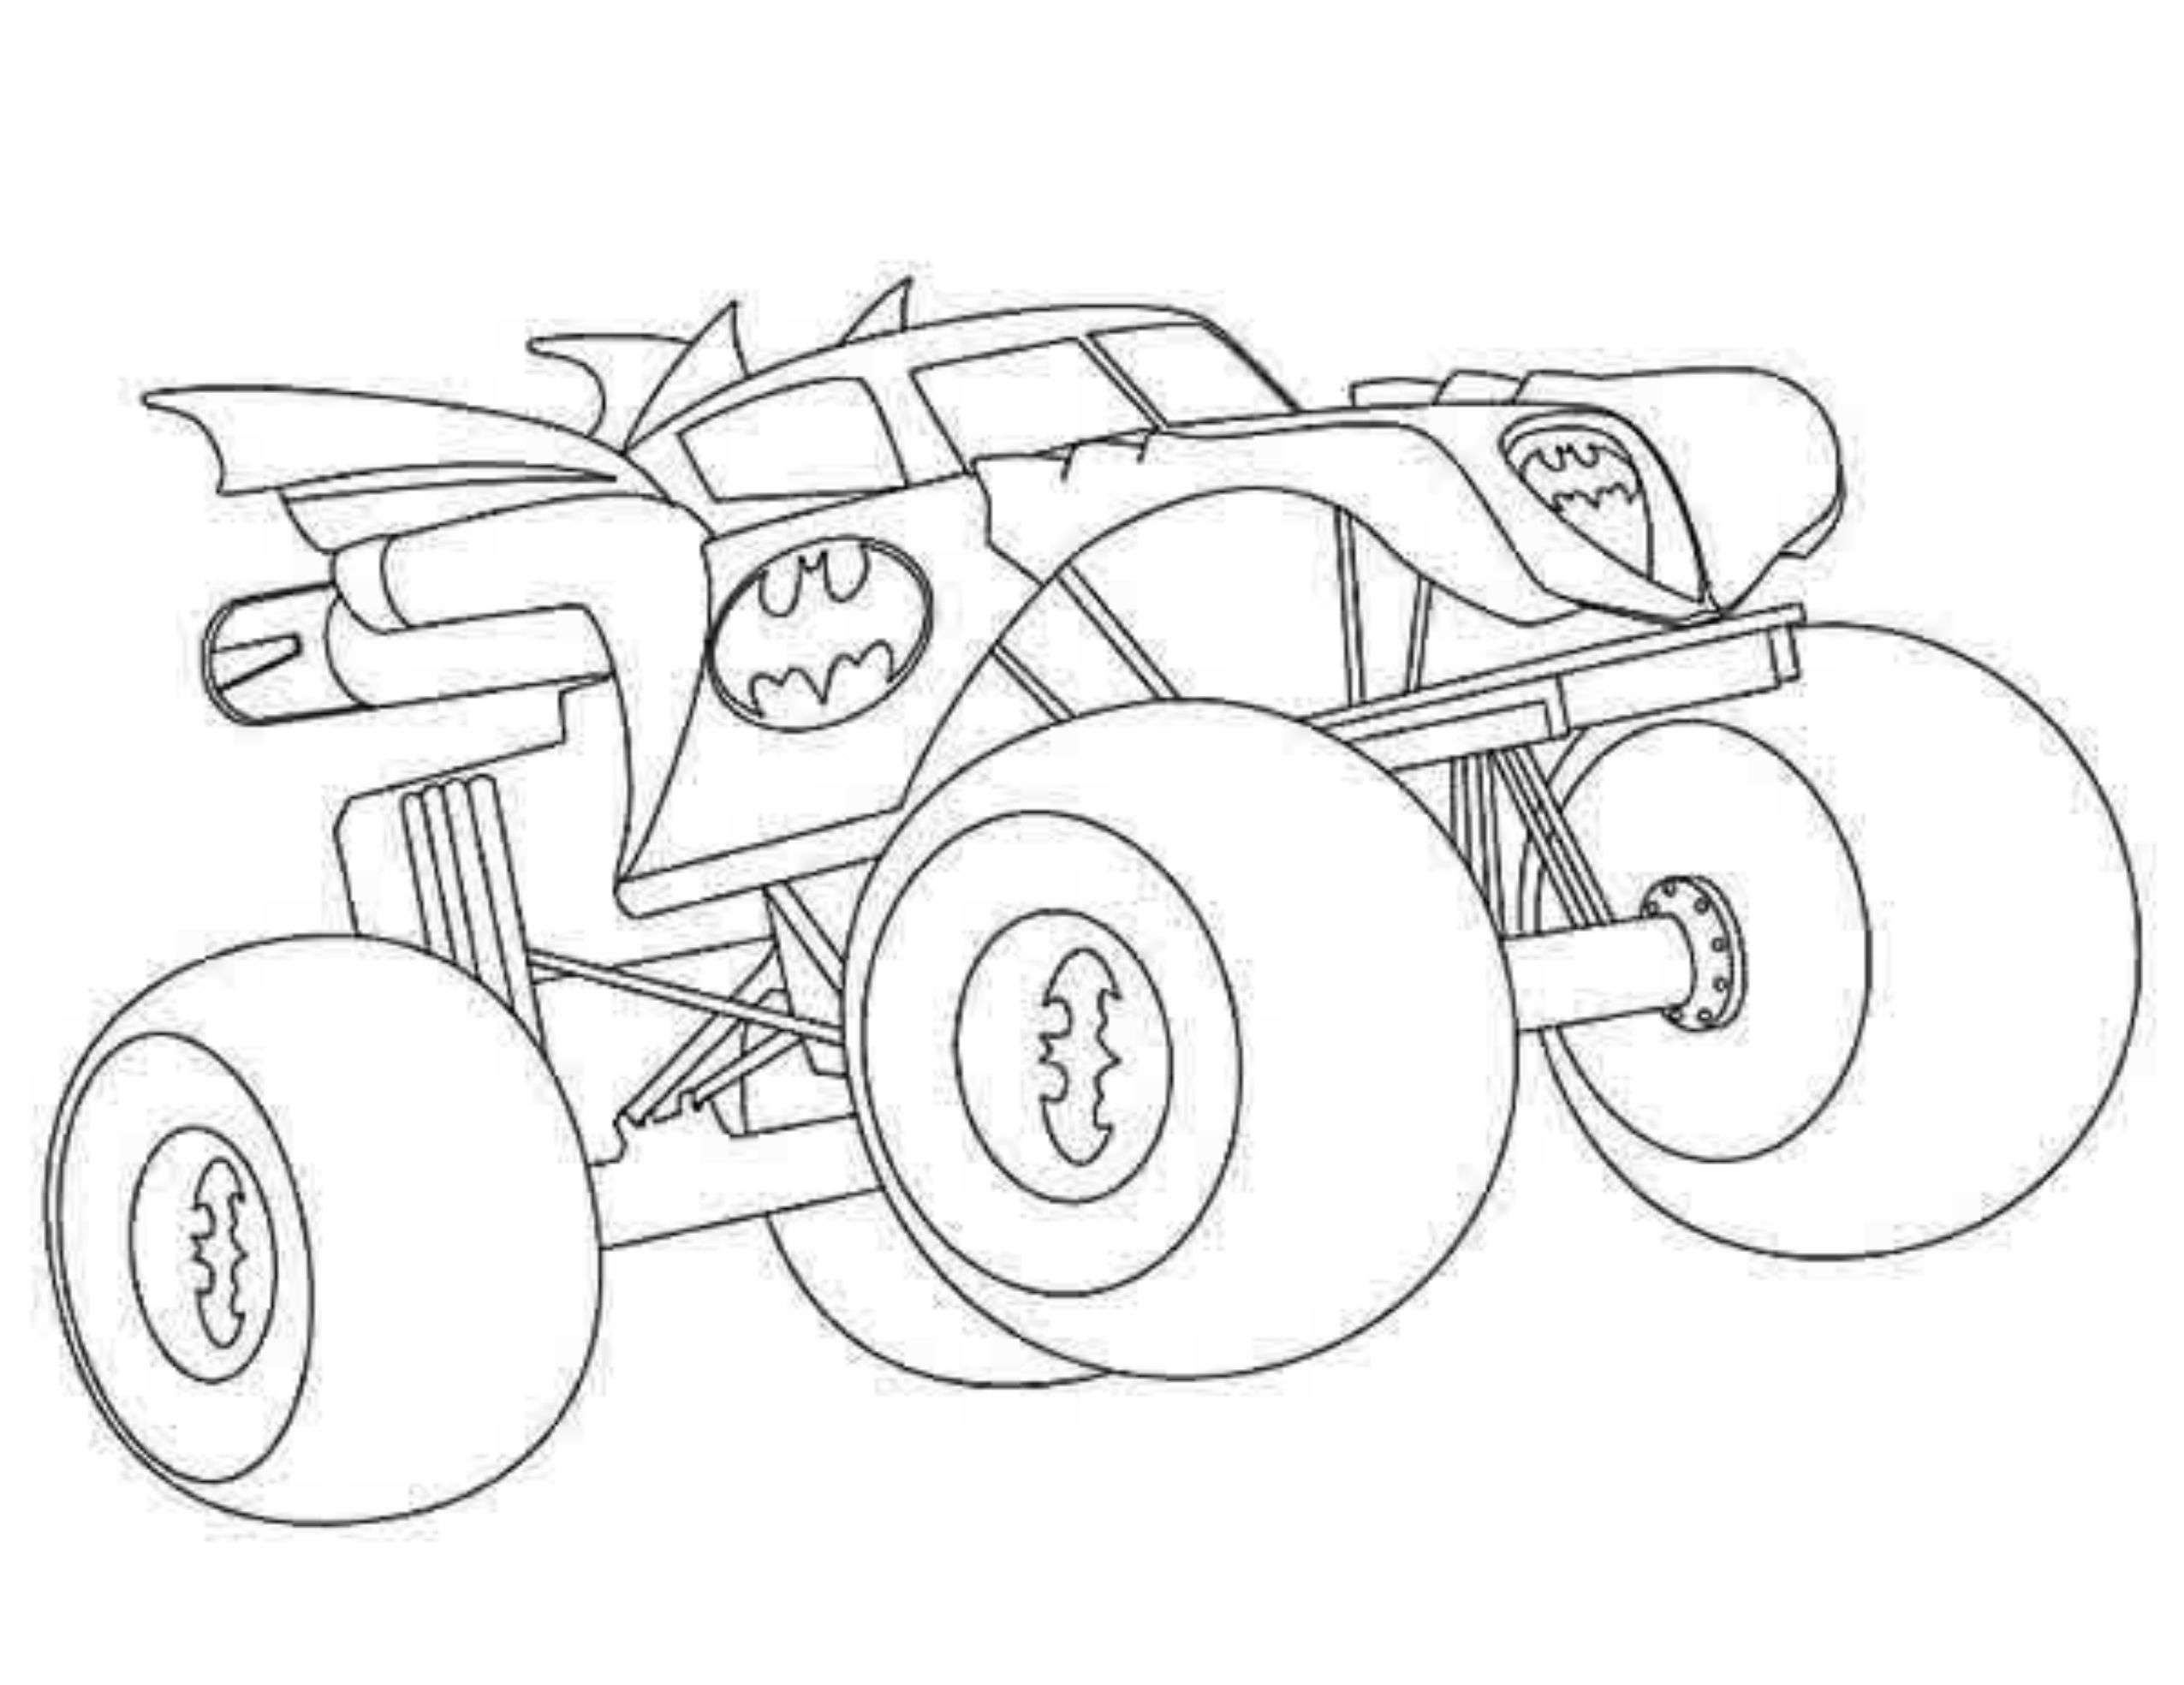 Monster Truck Grave Digger Coloring Pages At Getdrawings Com Free